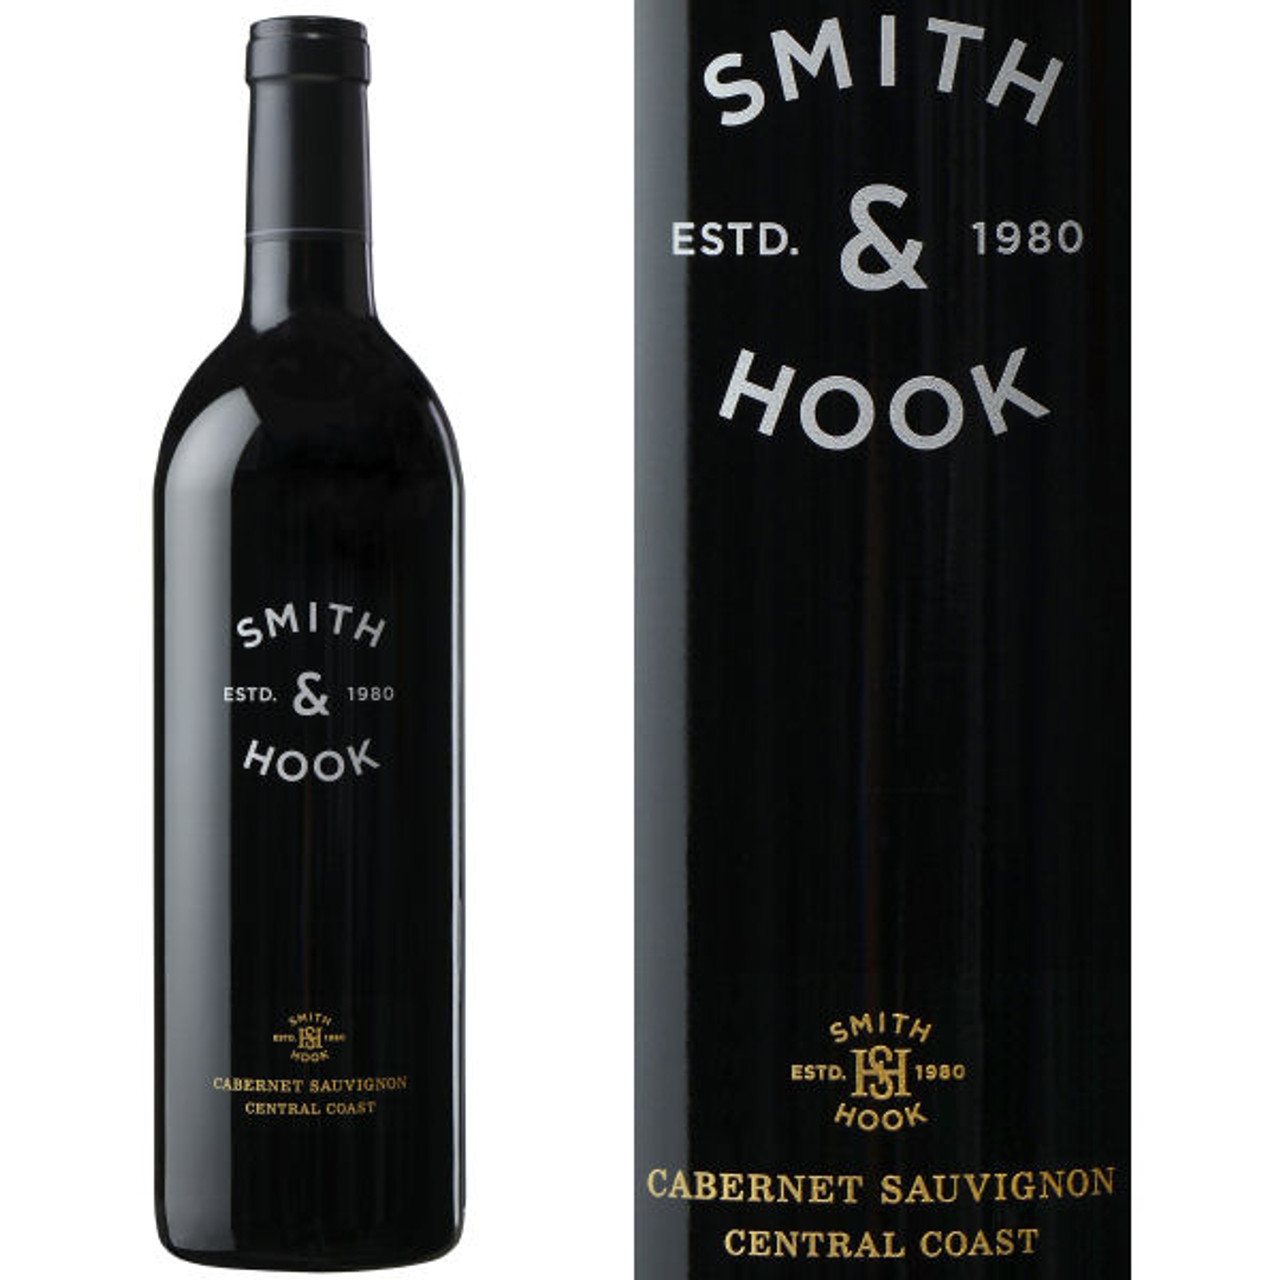 Smith and Hook Central Coast Cabernet